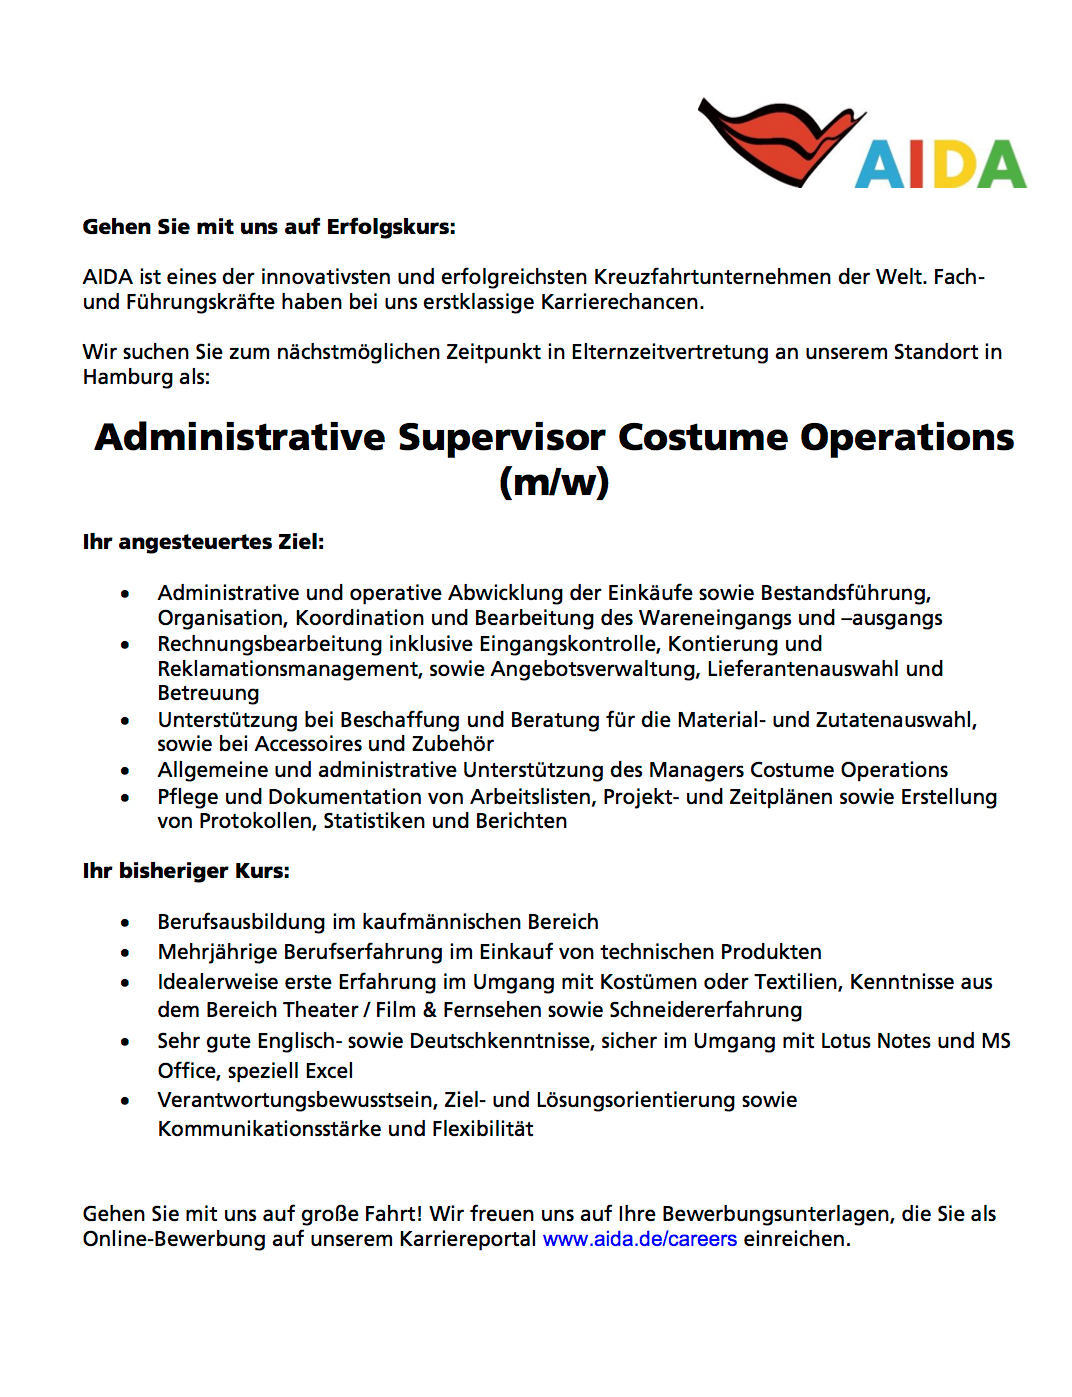 Administrative Supervisor Costume Operations (m/w)